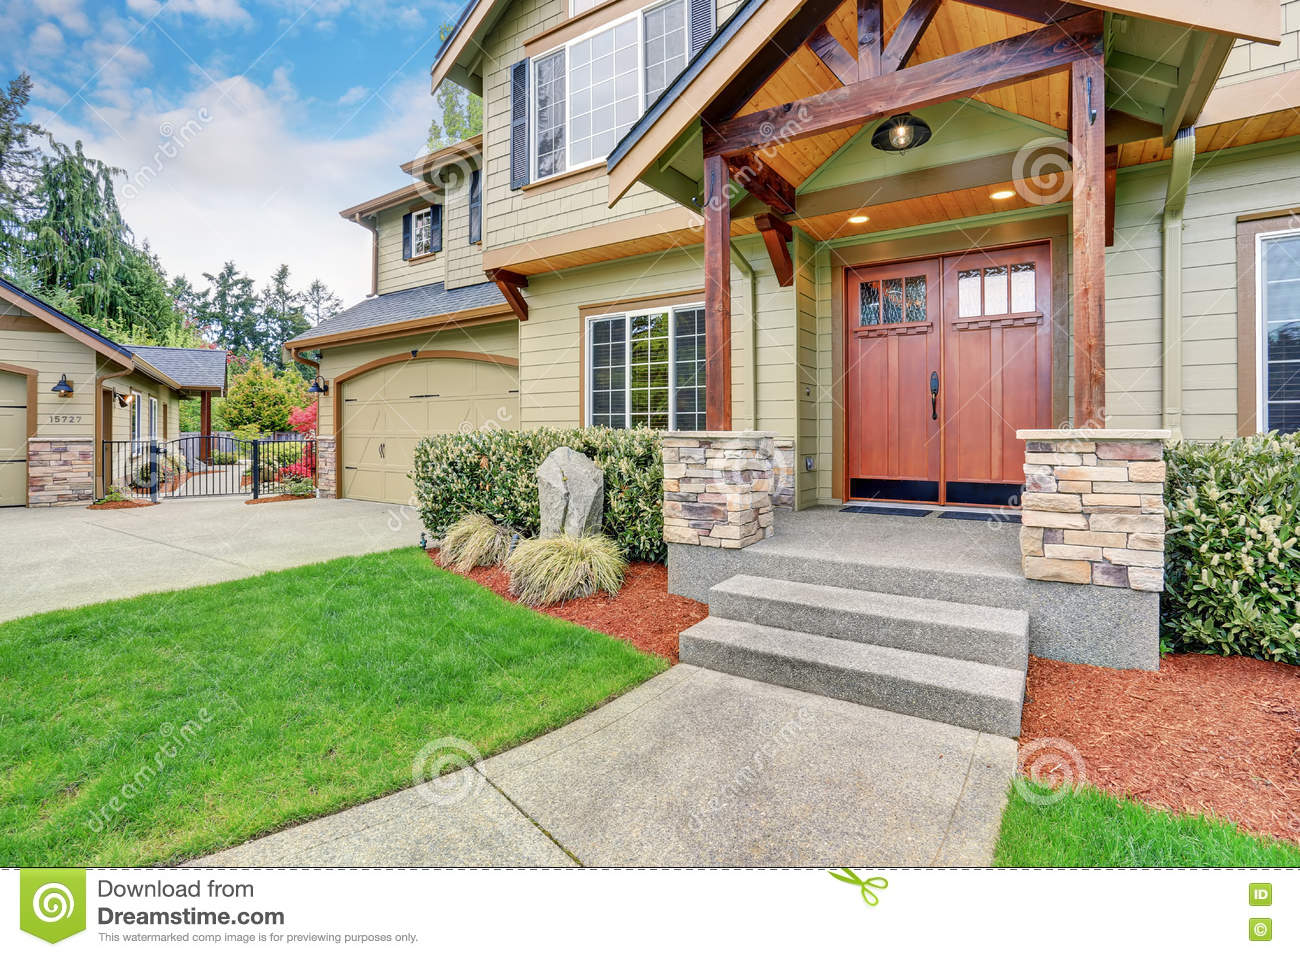 View of house entrance with stone column trim and double doors